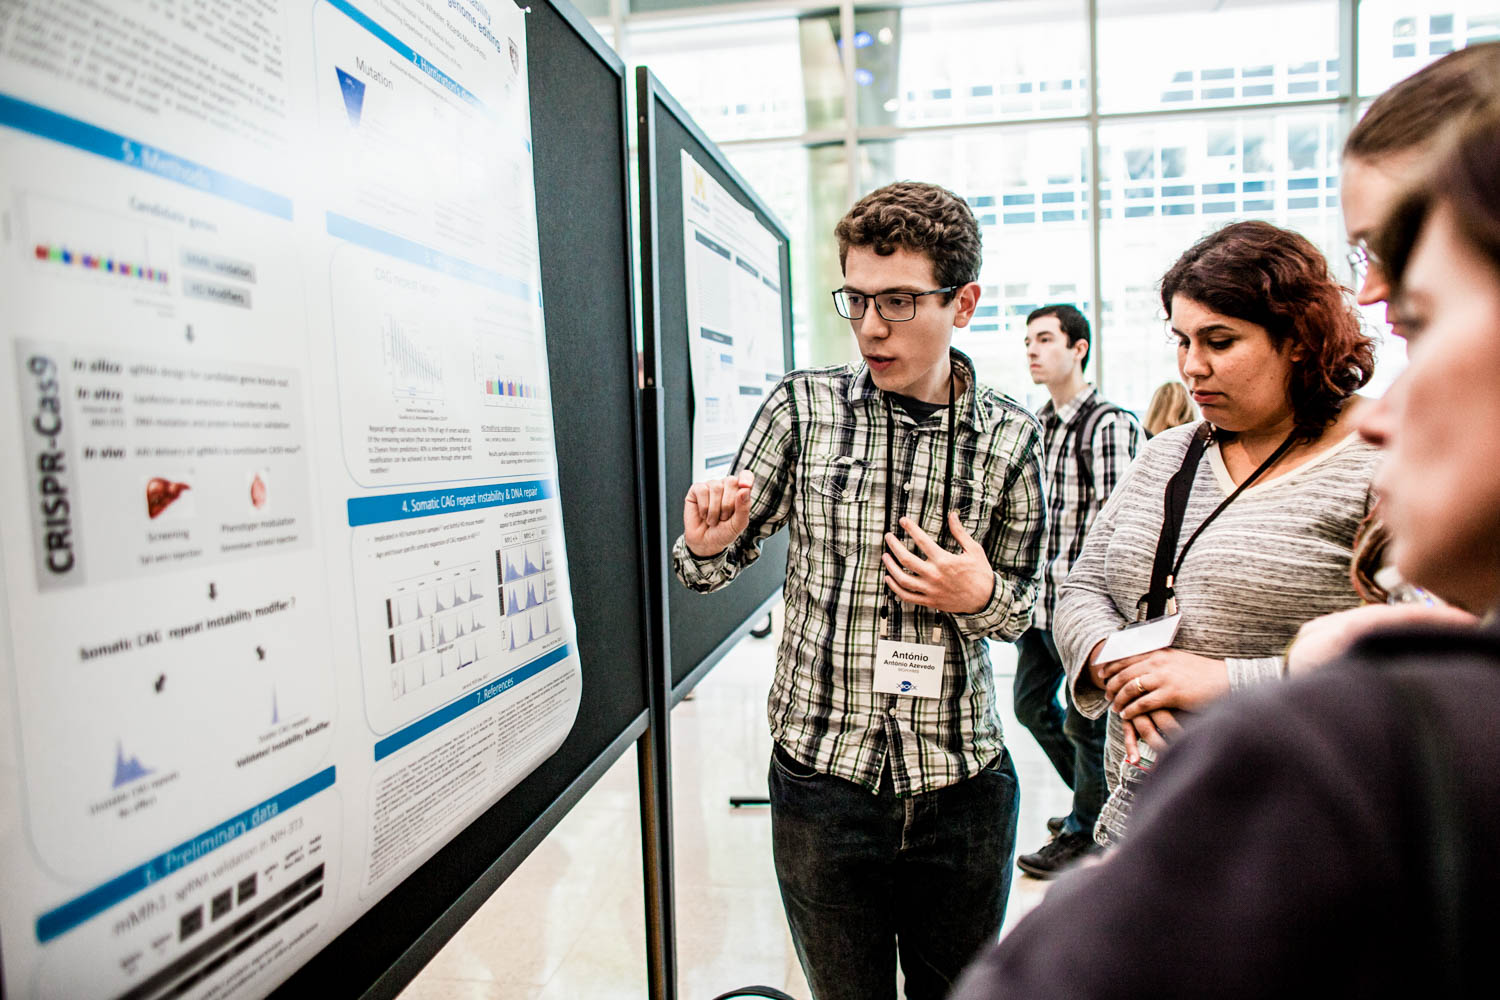 share your work - Present your work during the Sunday poster session and get feedback on your work and ideas for future directions